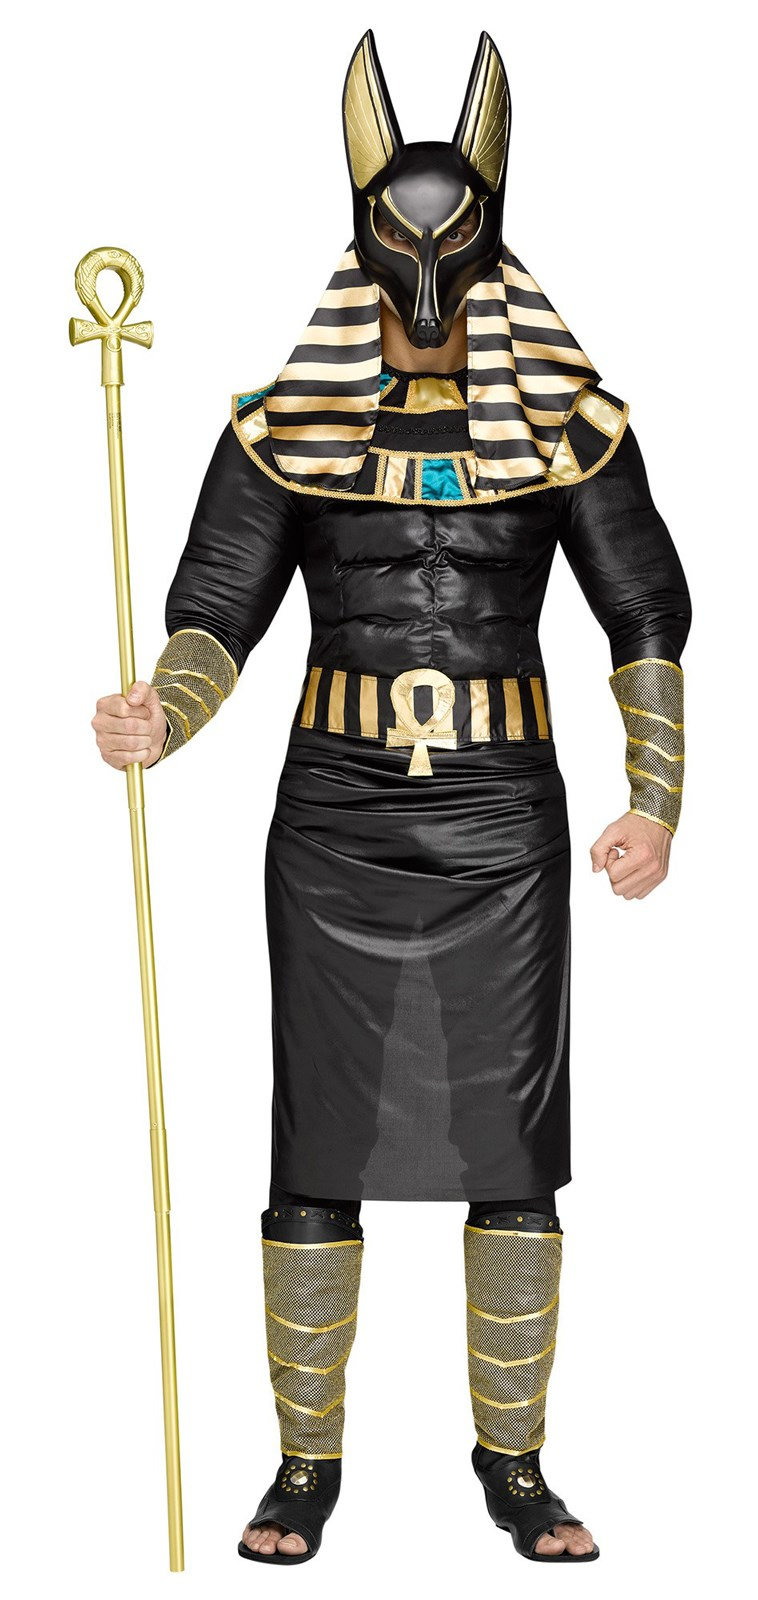 Image of Anubis The Jackal - Adult Egyptian Costume